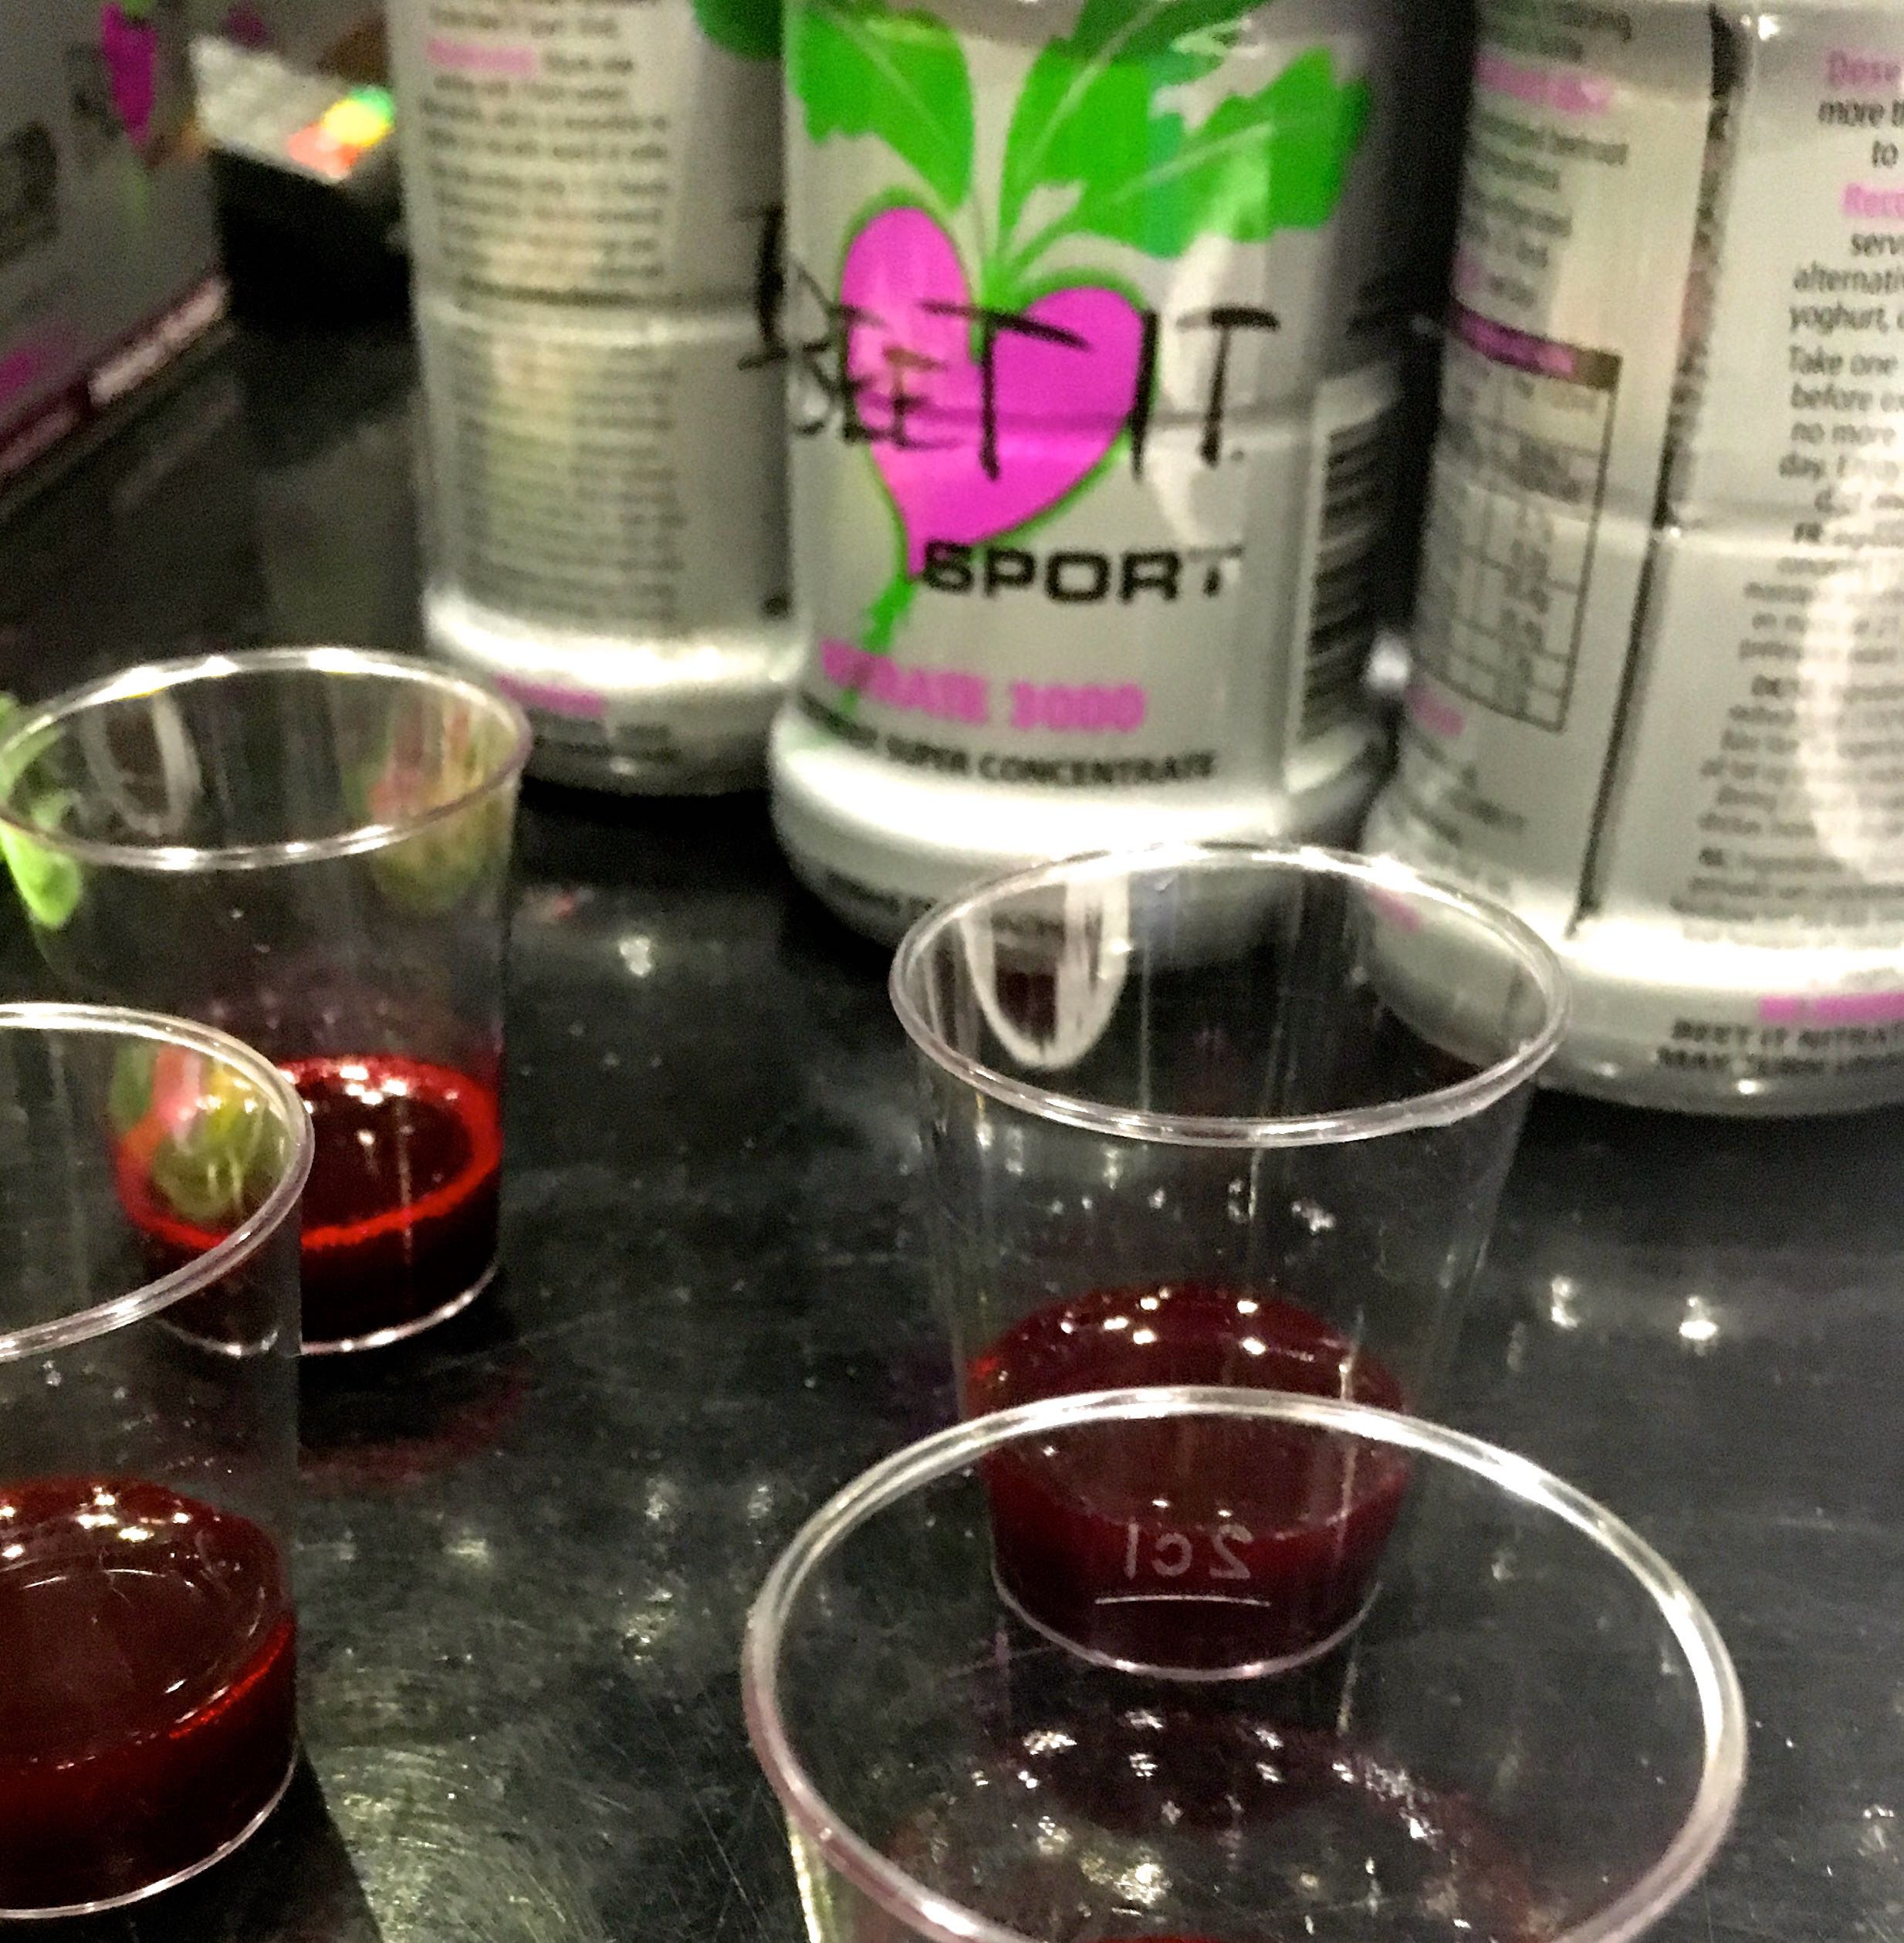 Beet It sports nutrition at the London Bike Show